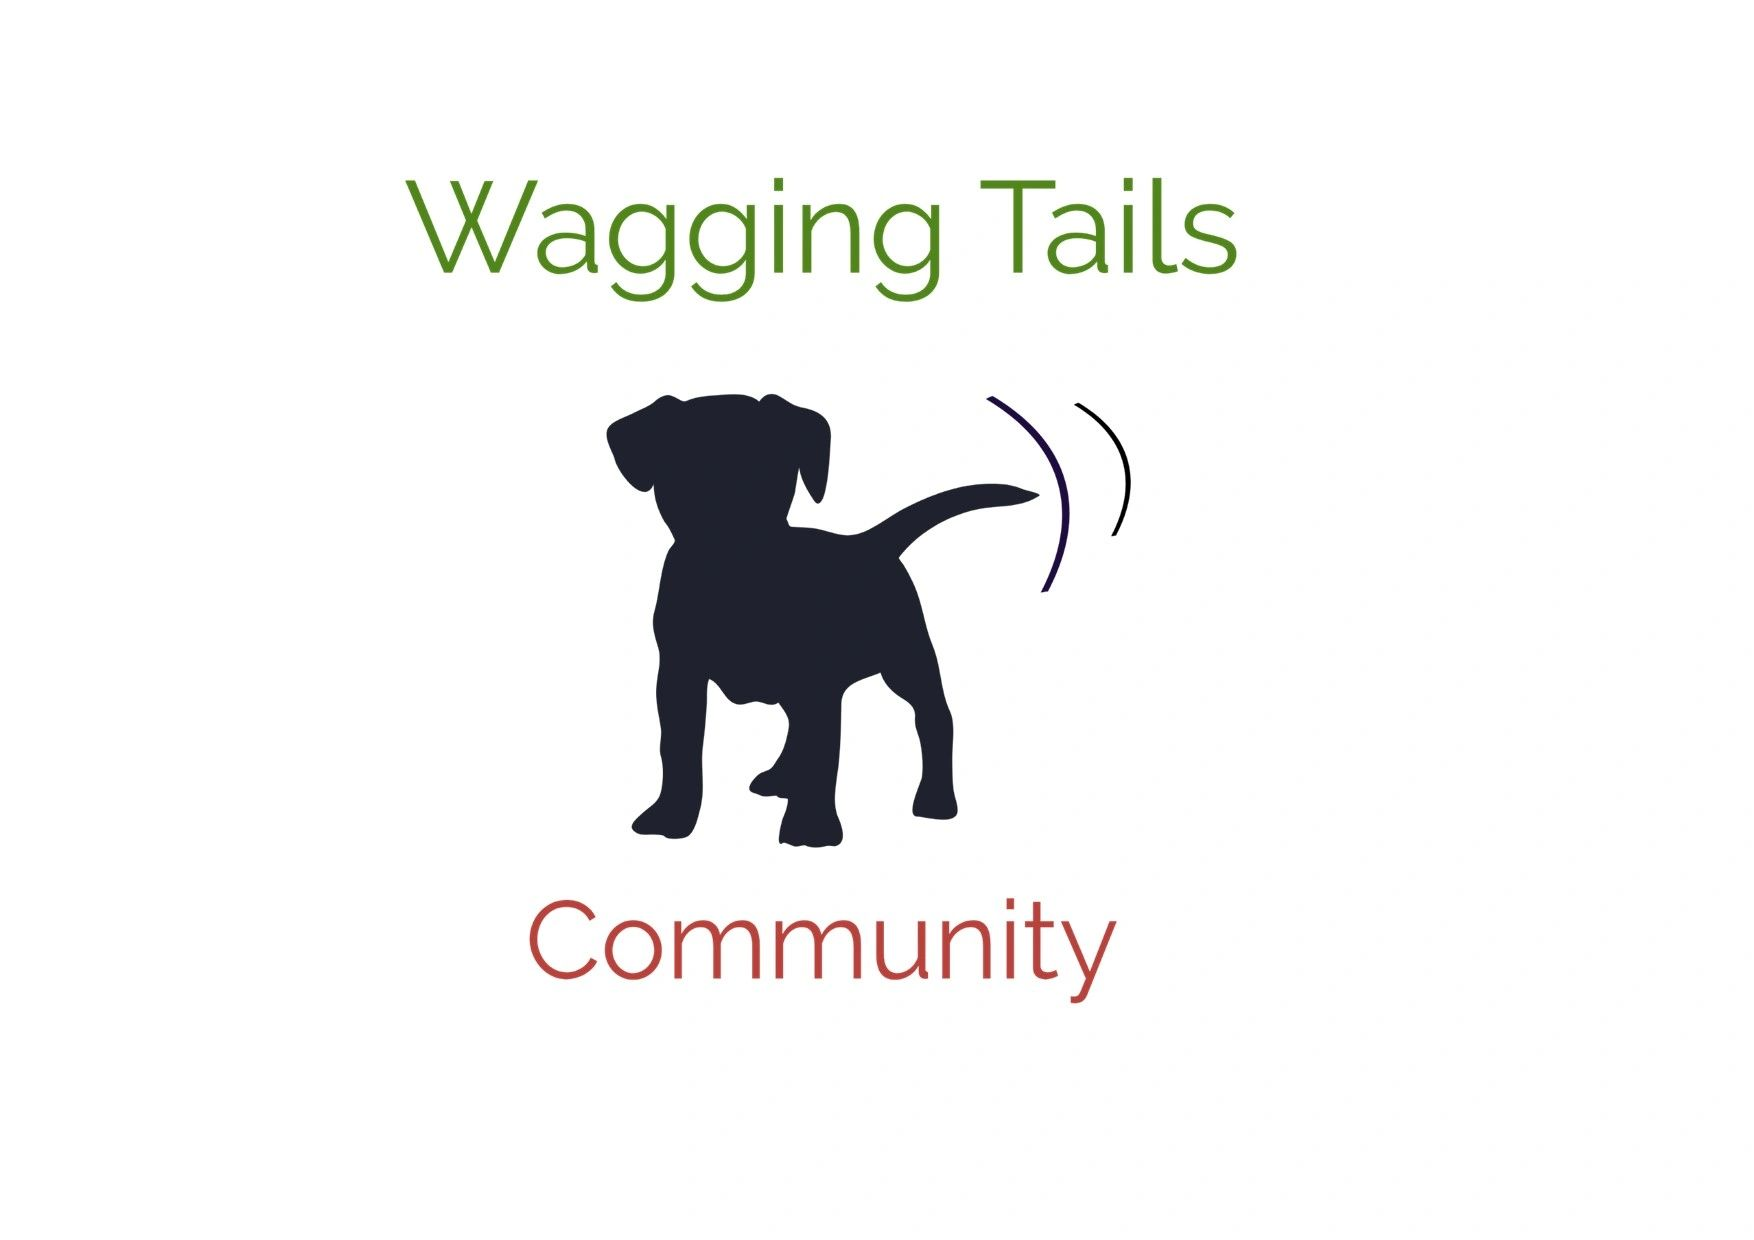 Wagging Tails Community Registered Charity